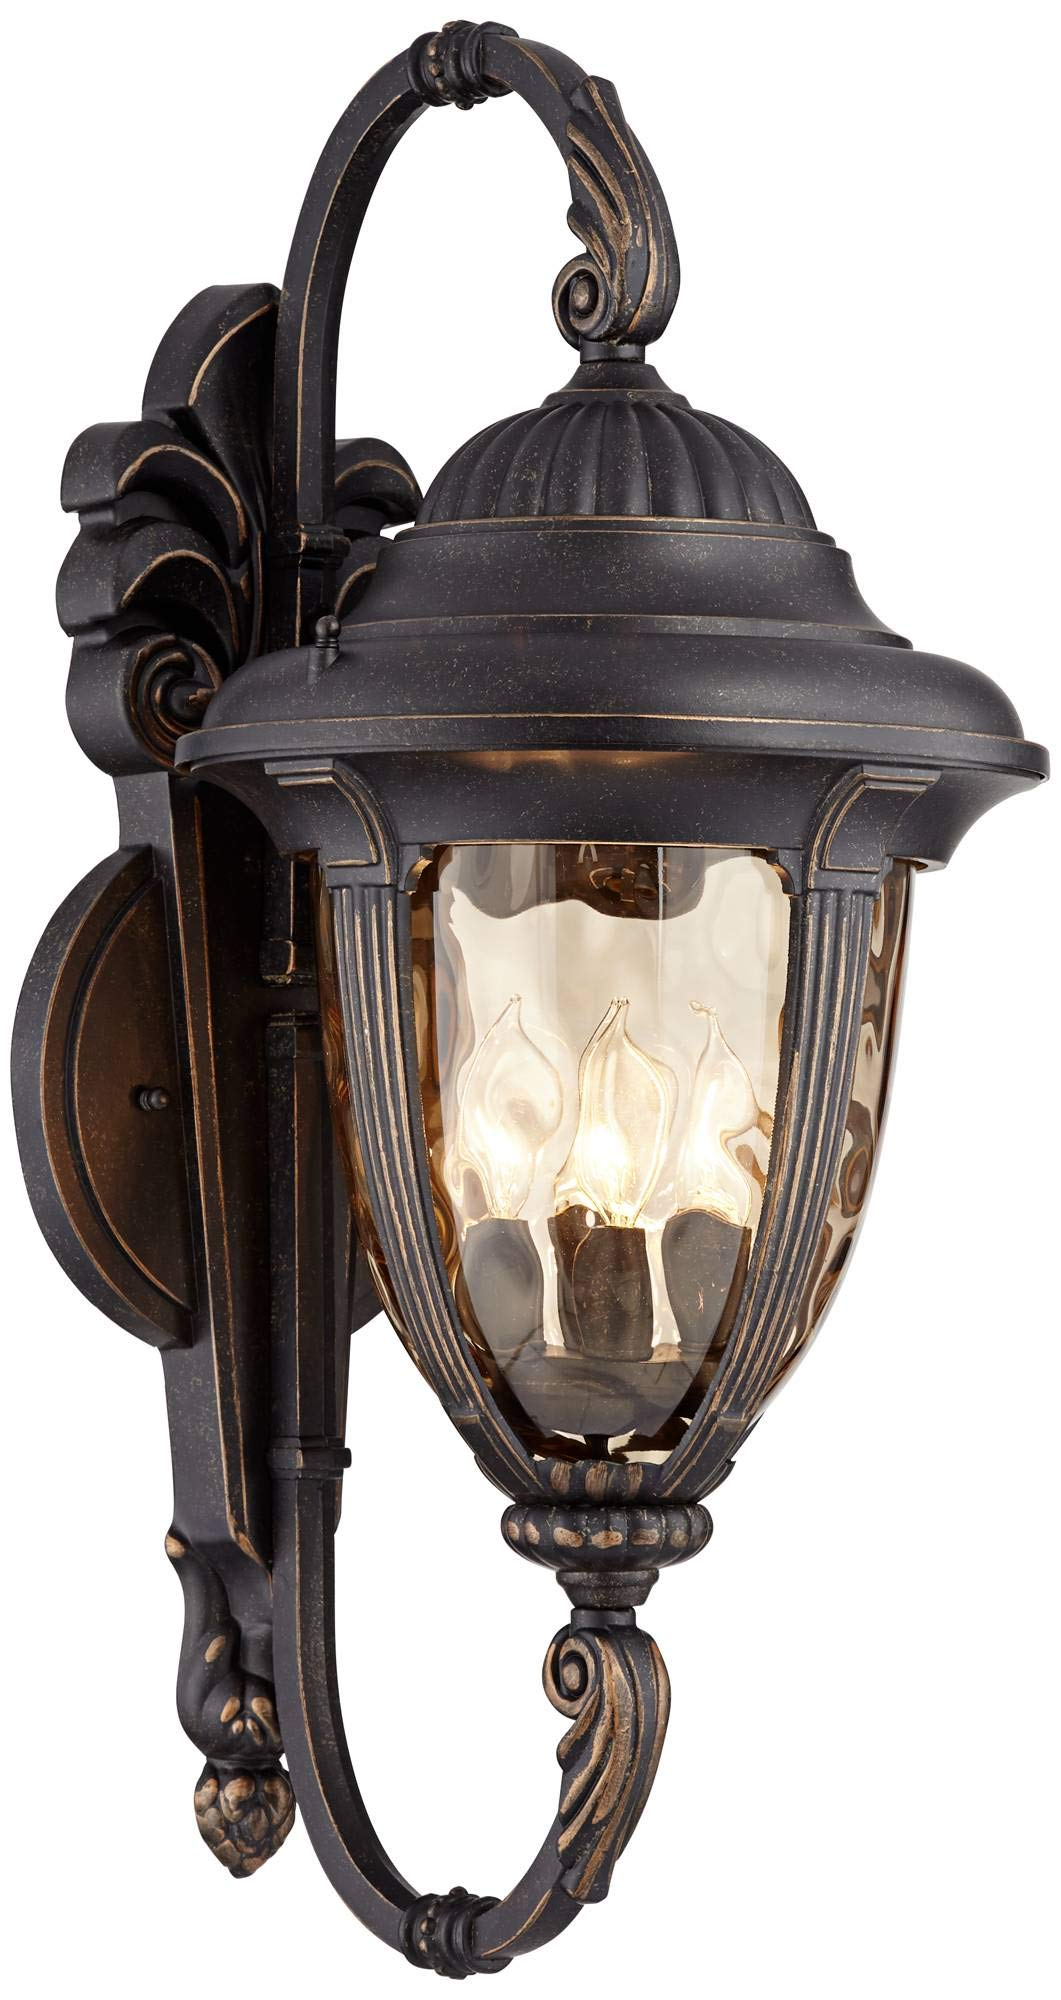 Bellagio Traditional Outdoor Wall Light Fixture Veranda Bronze Double Arm 27 1/2'' Champagne Hammered Glass for House Porch - John Timberland